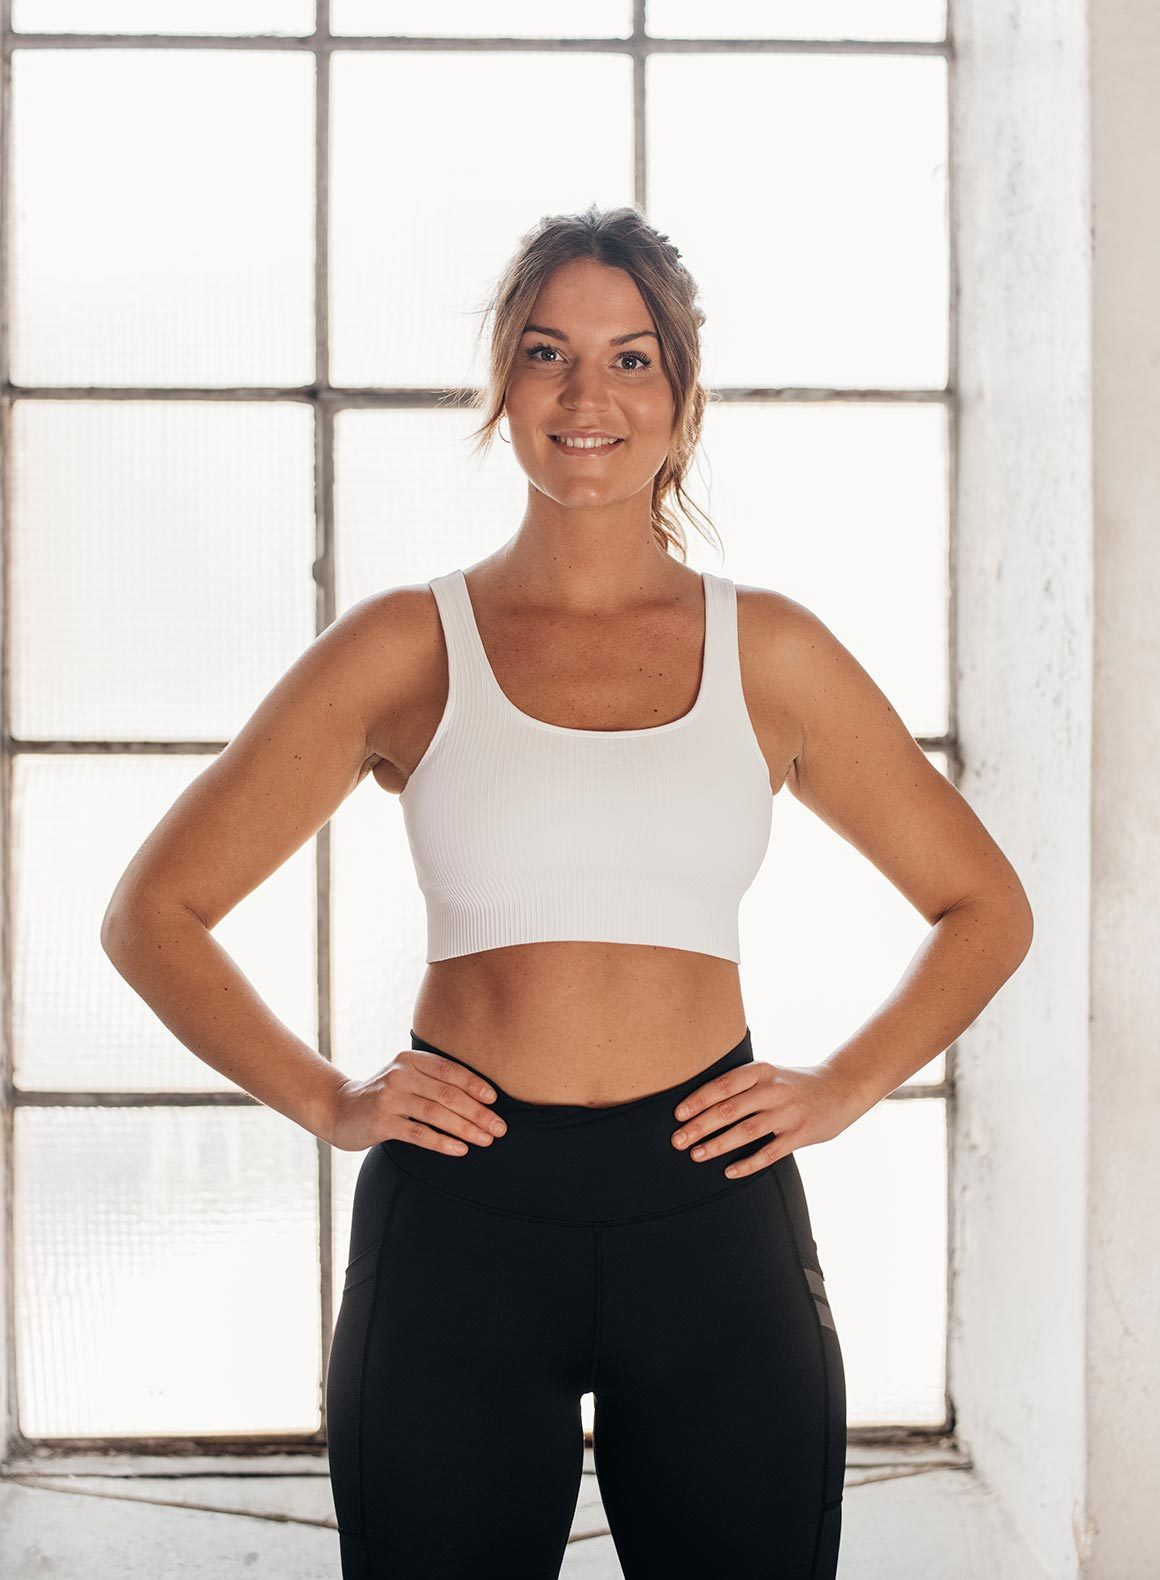 Aim'n Ribbed Seamless Bra - White | Shop AIM'N Sportswear at GOALS NZ